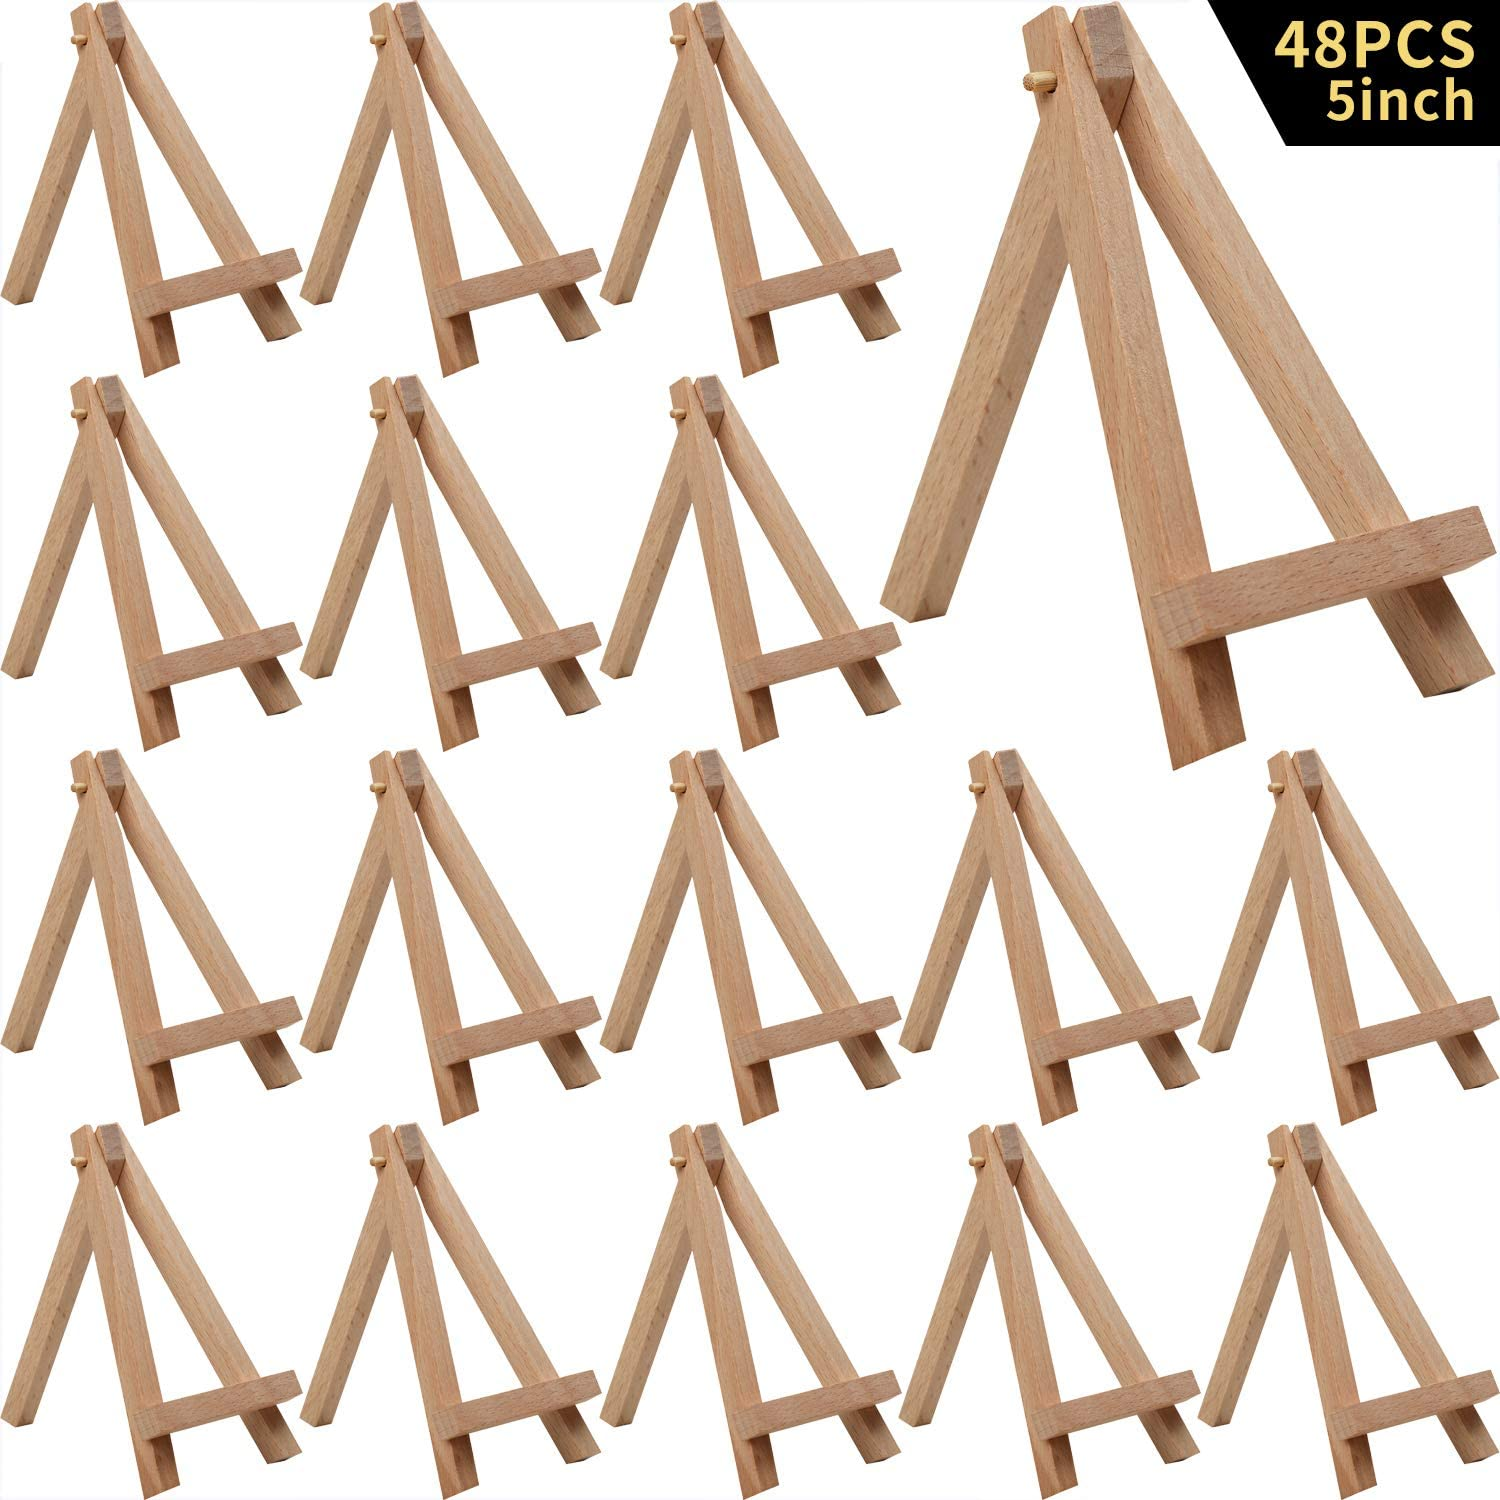 MEEDEN 5 Inch Mini Beech Wood Easel, 48Pack Small Wood Display Stand for Displaying Small Canvases, Business Card, Photos, Decorative Plates and More